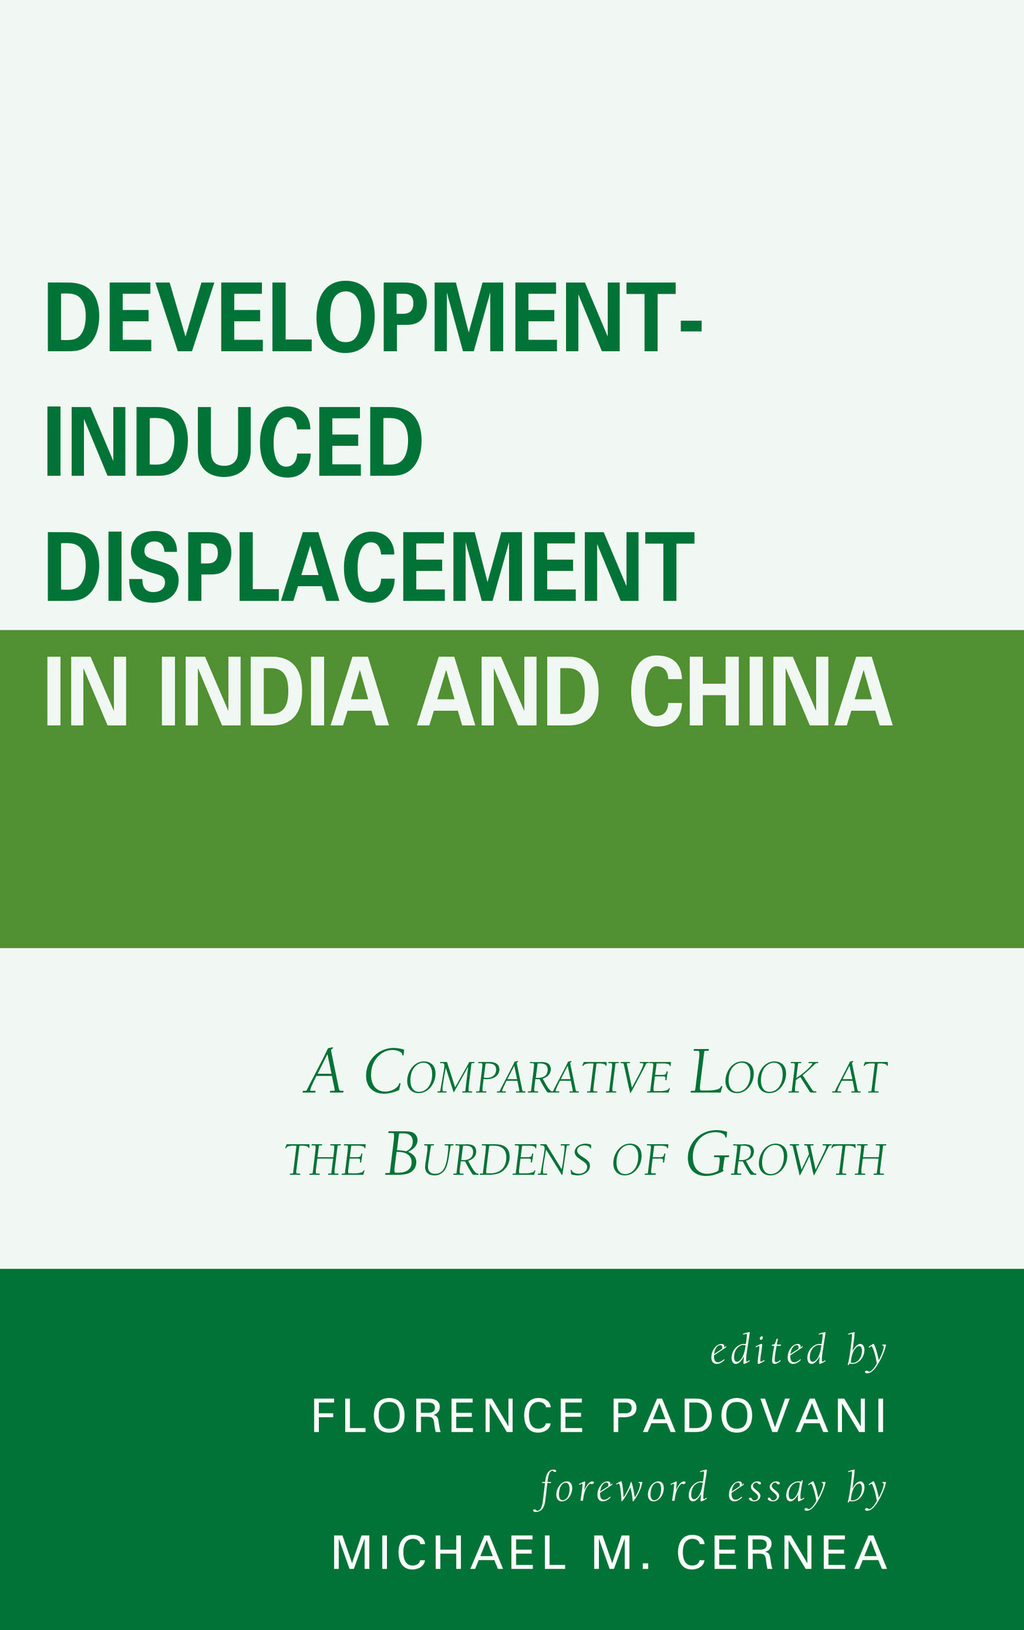 Development-Induced Displacement in India and China (ebook) eBooks